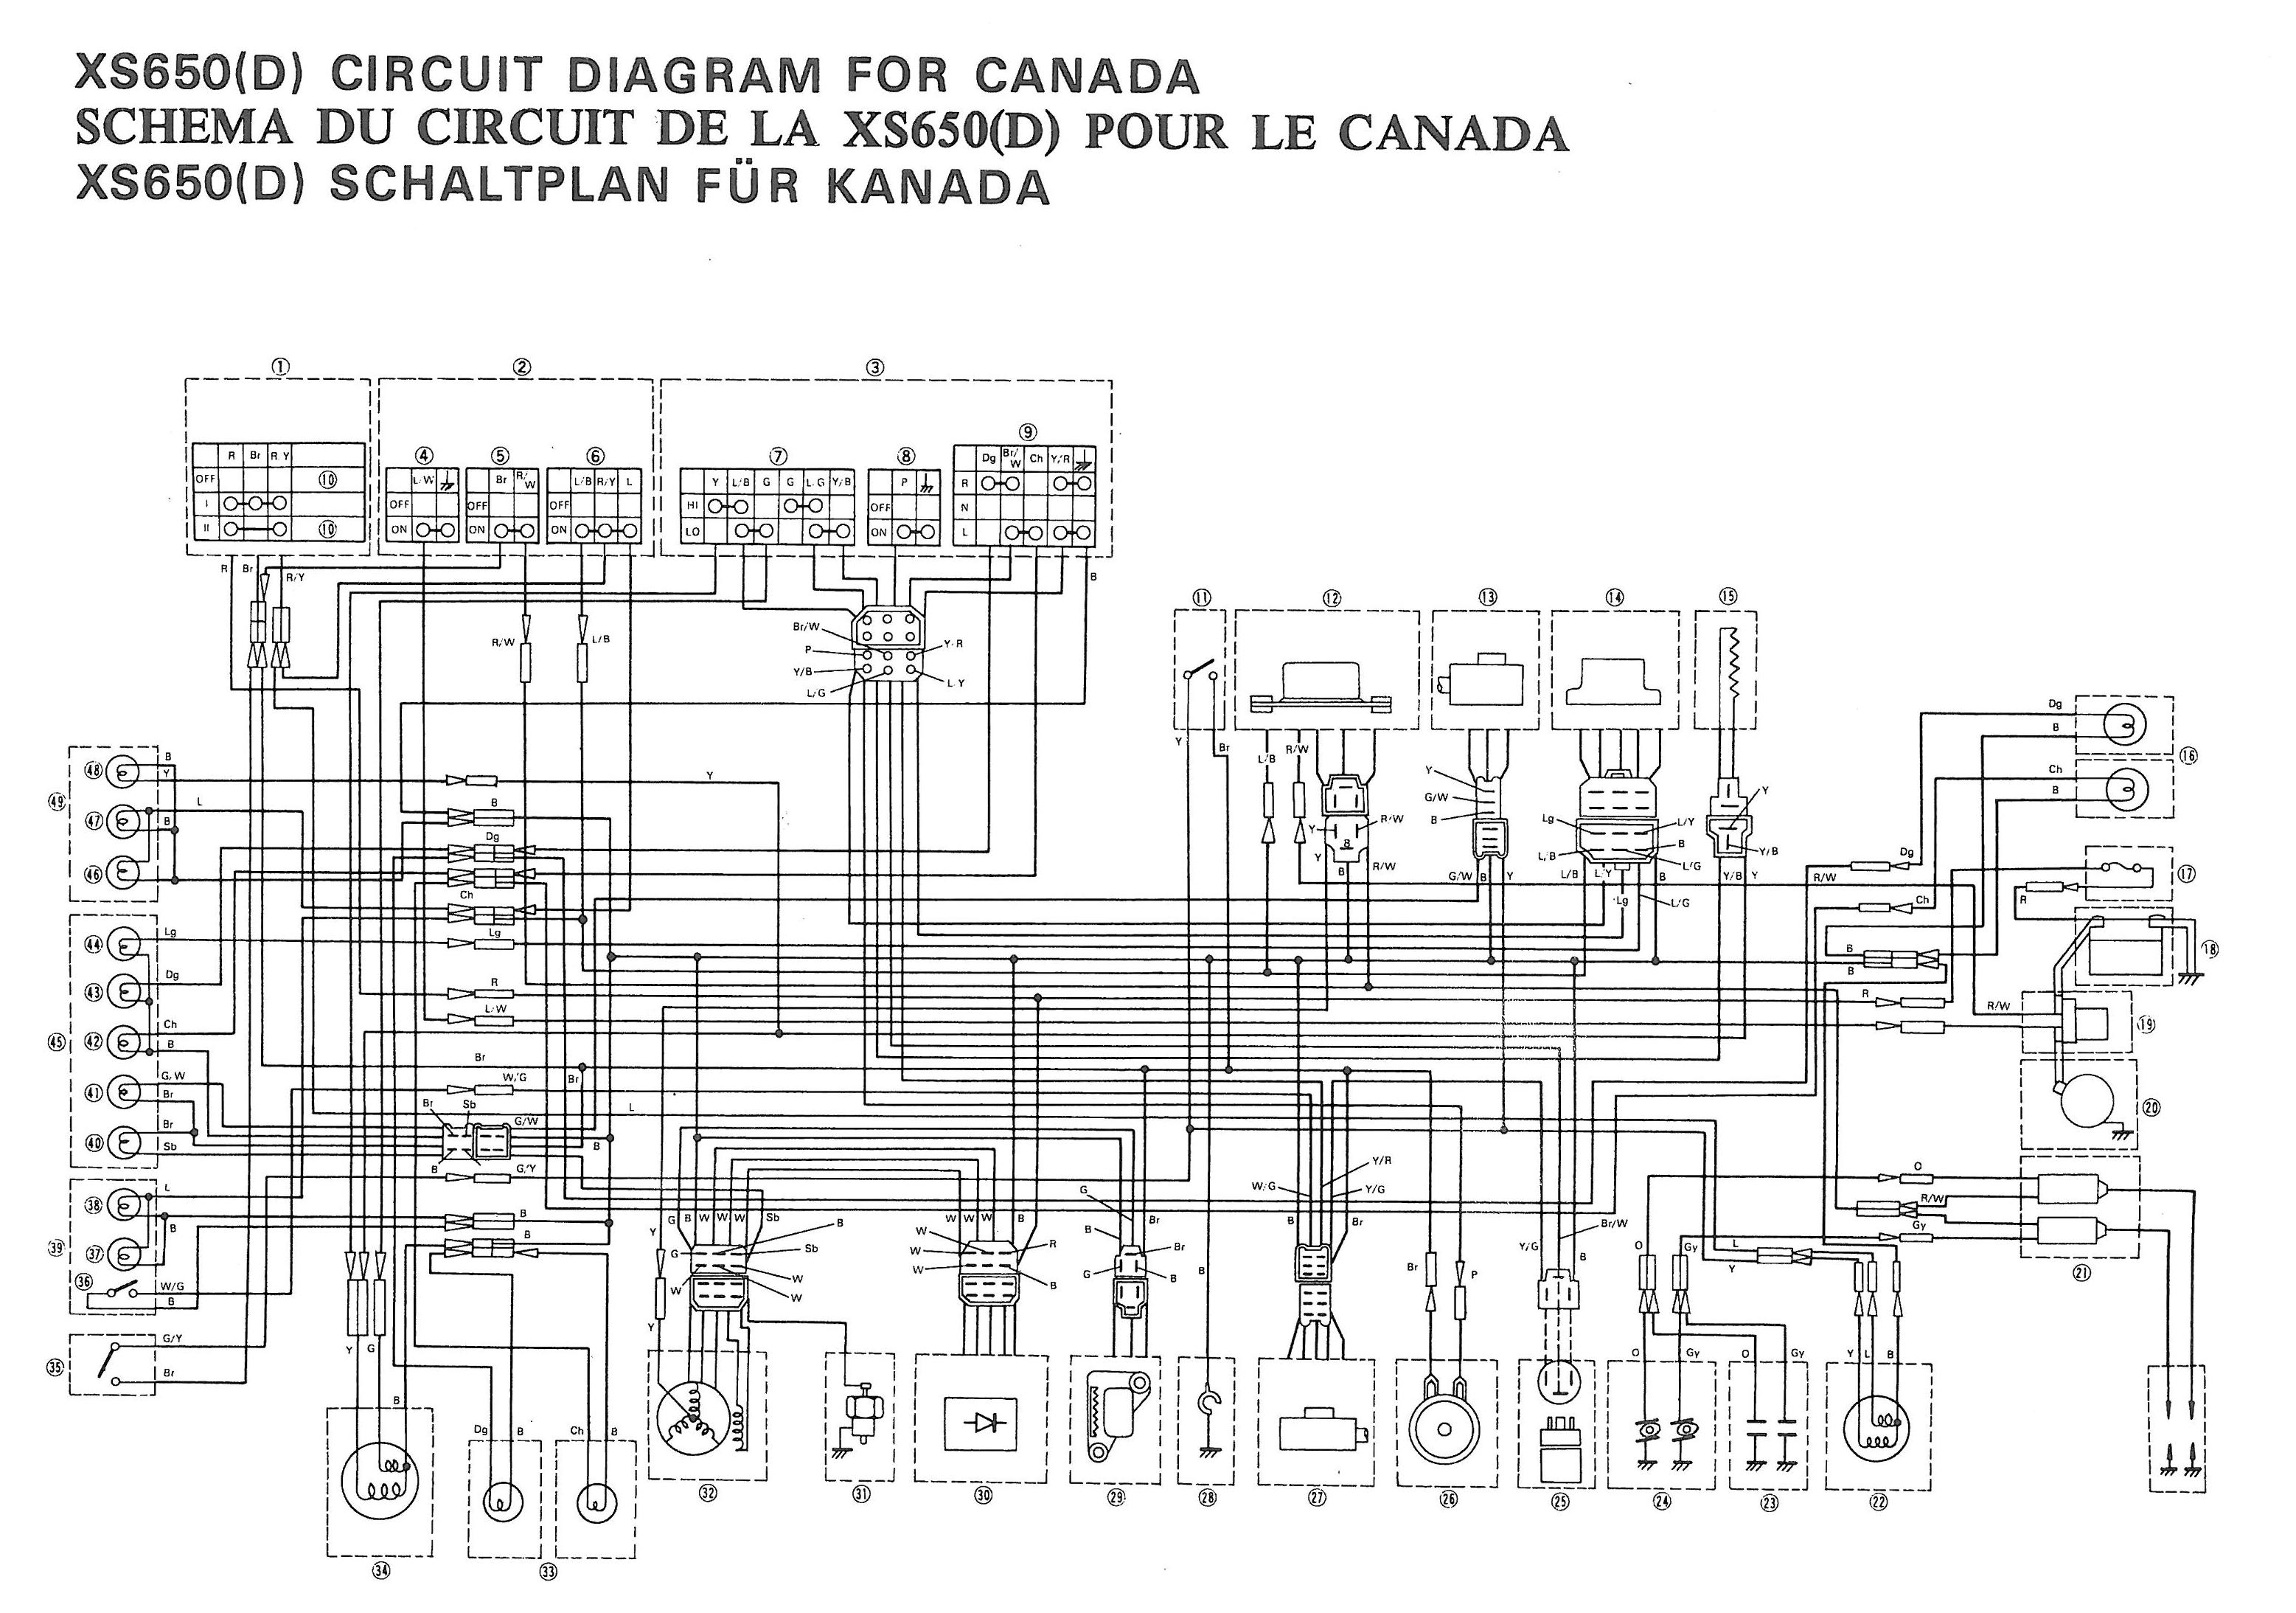 1982 Xs650 Wiring Diagram Another Blog About 1981 1979 Yamaha Xs750 Special Hobbiesxstyle